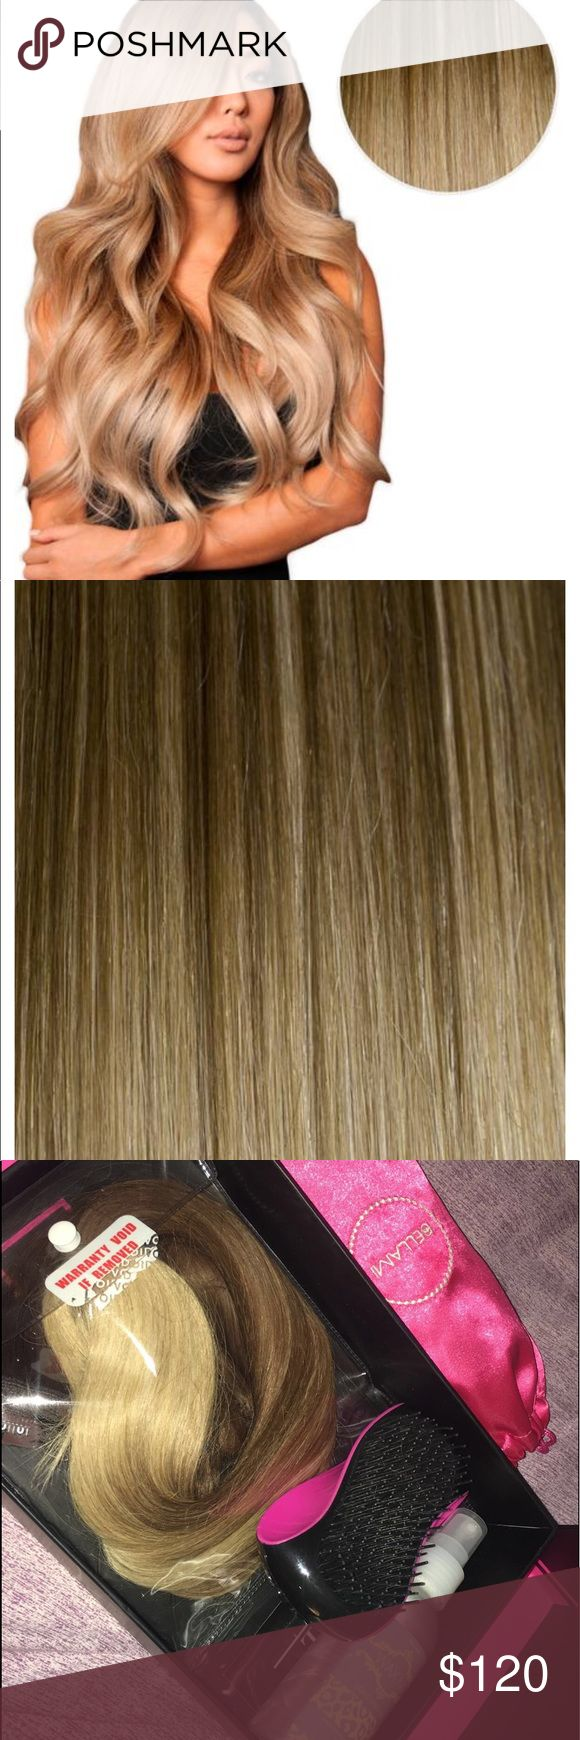 """BALAYAGE 160G 20"""" OMBRE HAIR EXTENSIONS Total weight: 160 grams  Total Pieces: 10 Length: 20 inches Balayage Range Contains: 1 x 8 inch wefts 1 x 7 inch wefts 2 x 6 inch wefts 2 x 4 inch wefts 4 x 1.5 inch wefts BELLAMI Tangle Tamer Brush & BELAMI Travel Hair Straightener Bellami Hair Other"""